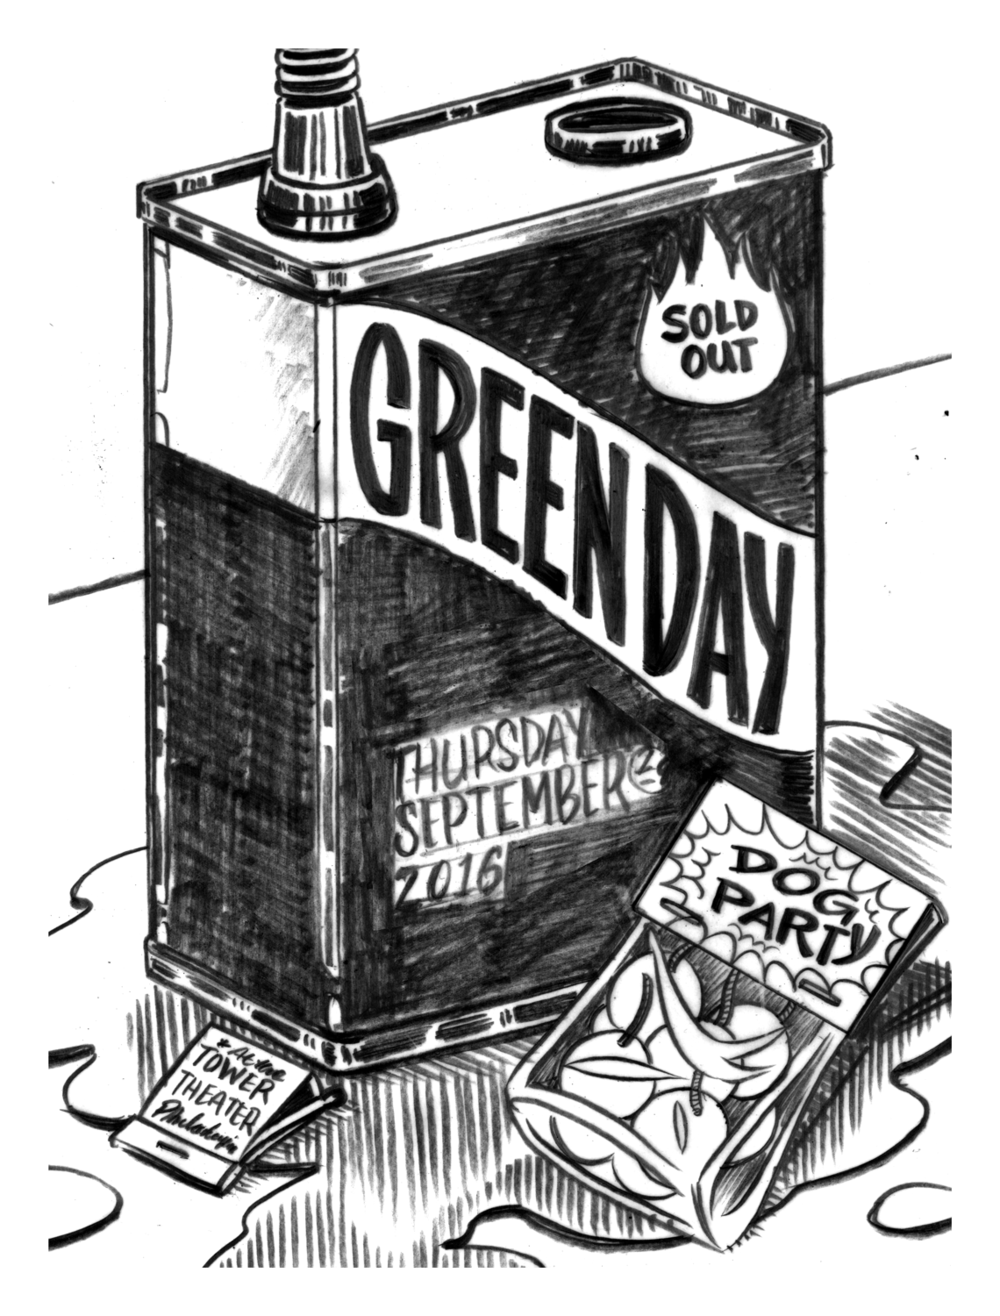 GREENDAY_Poster_Sketch_No4.png